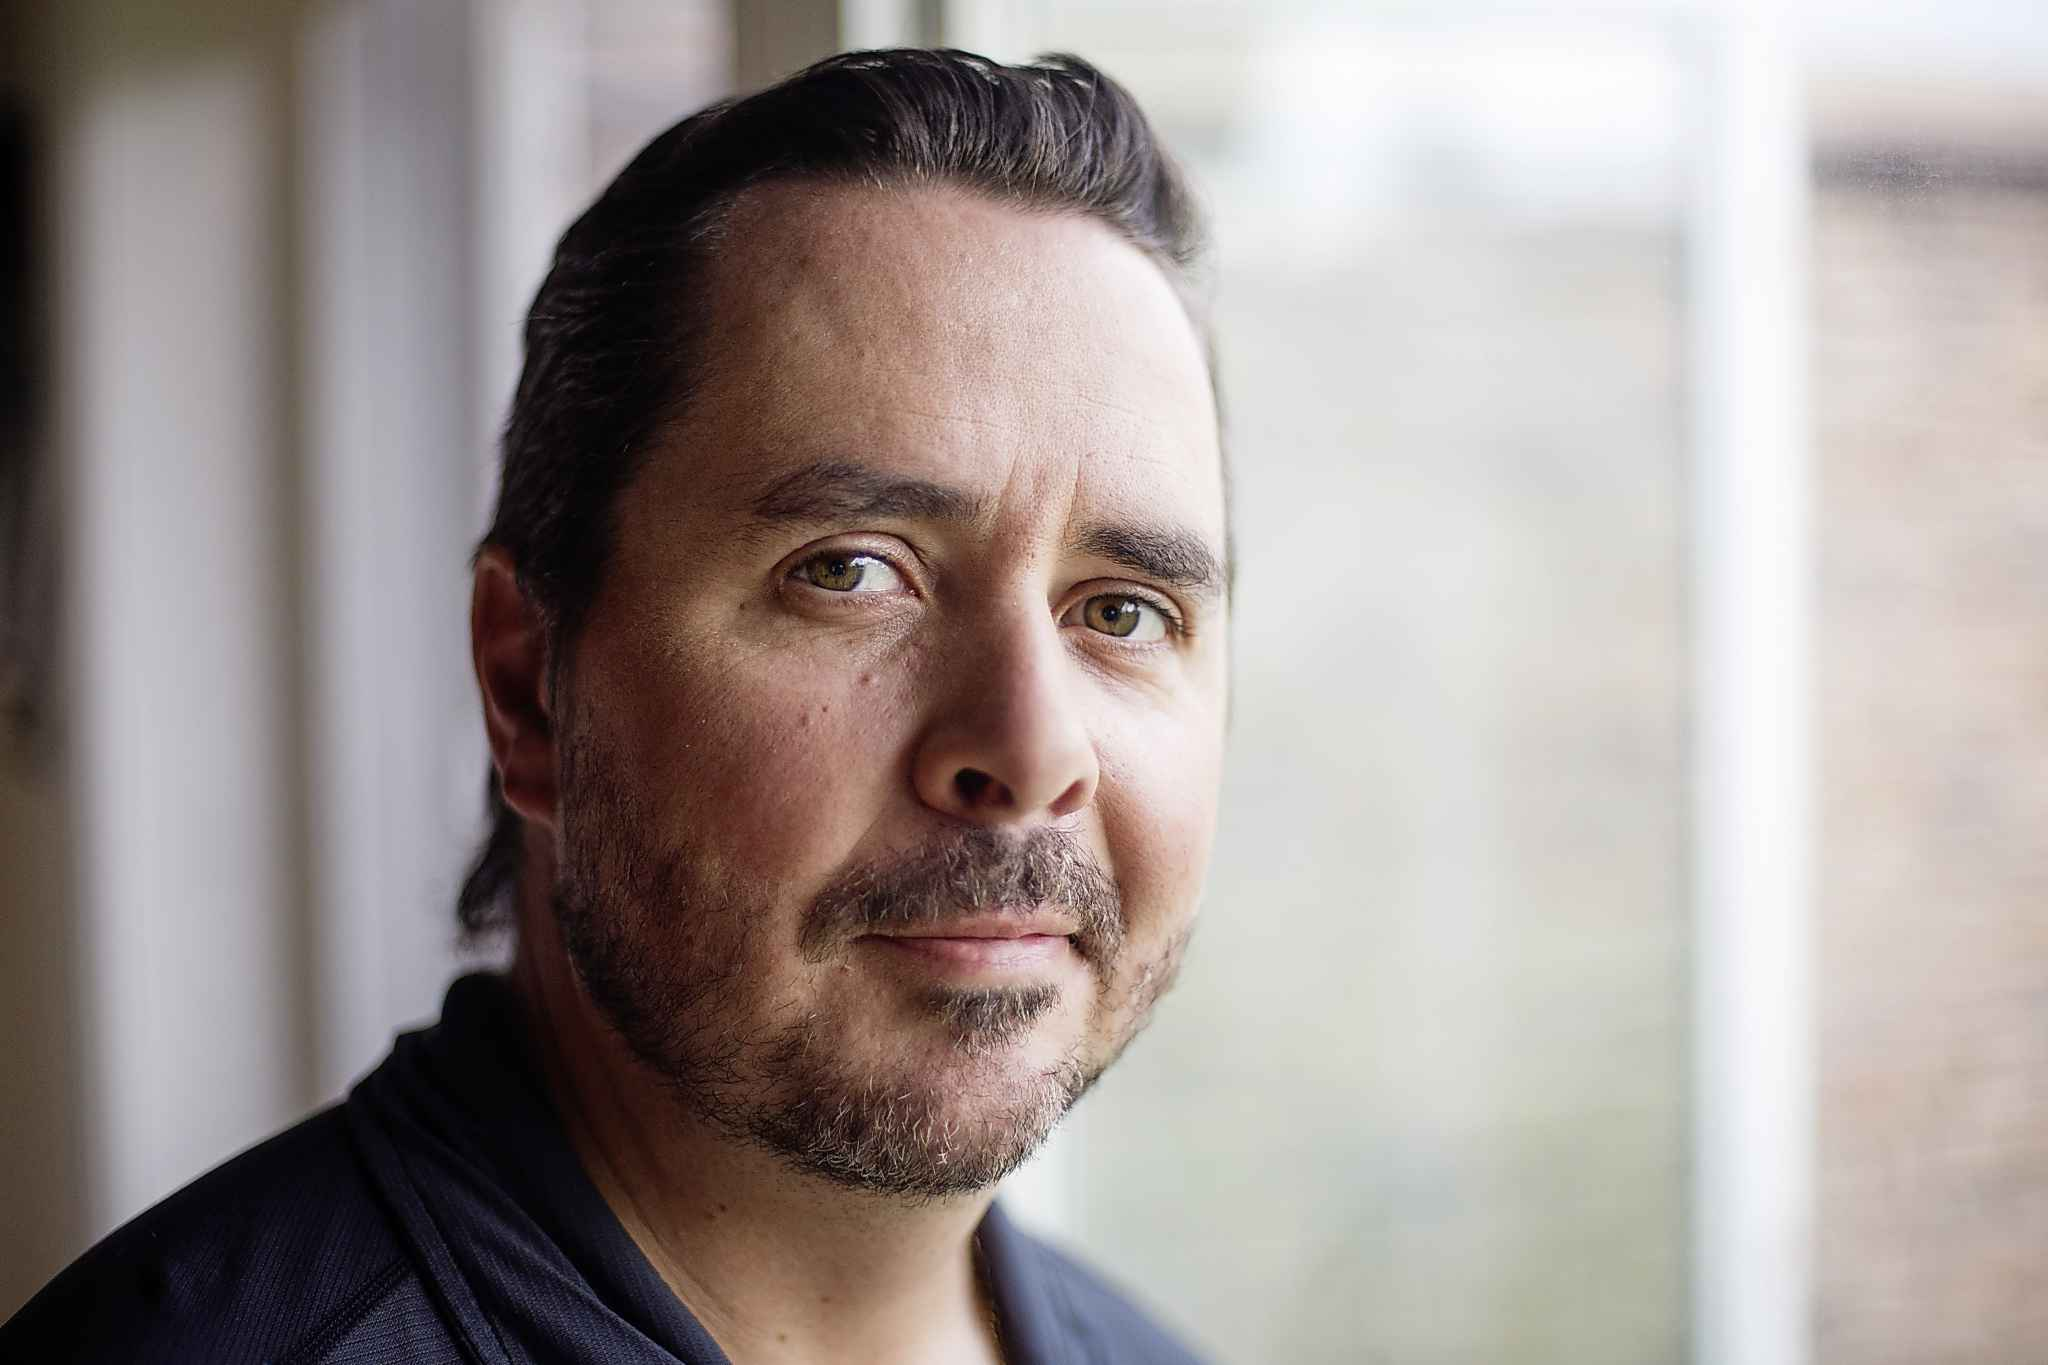 Two years after he was booted from rock radio for transphobic comments, Dave Wheeler is coming back to Winnipeg's airwaves to be the morning host on Energy 106 FM.